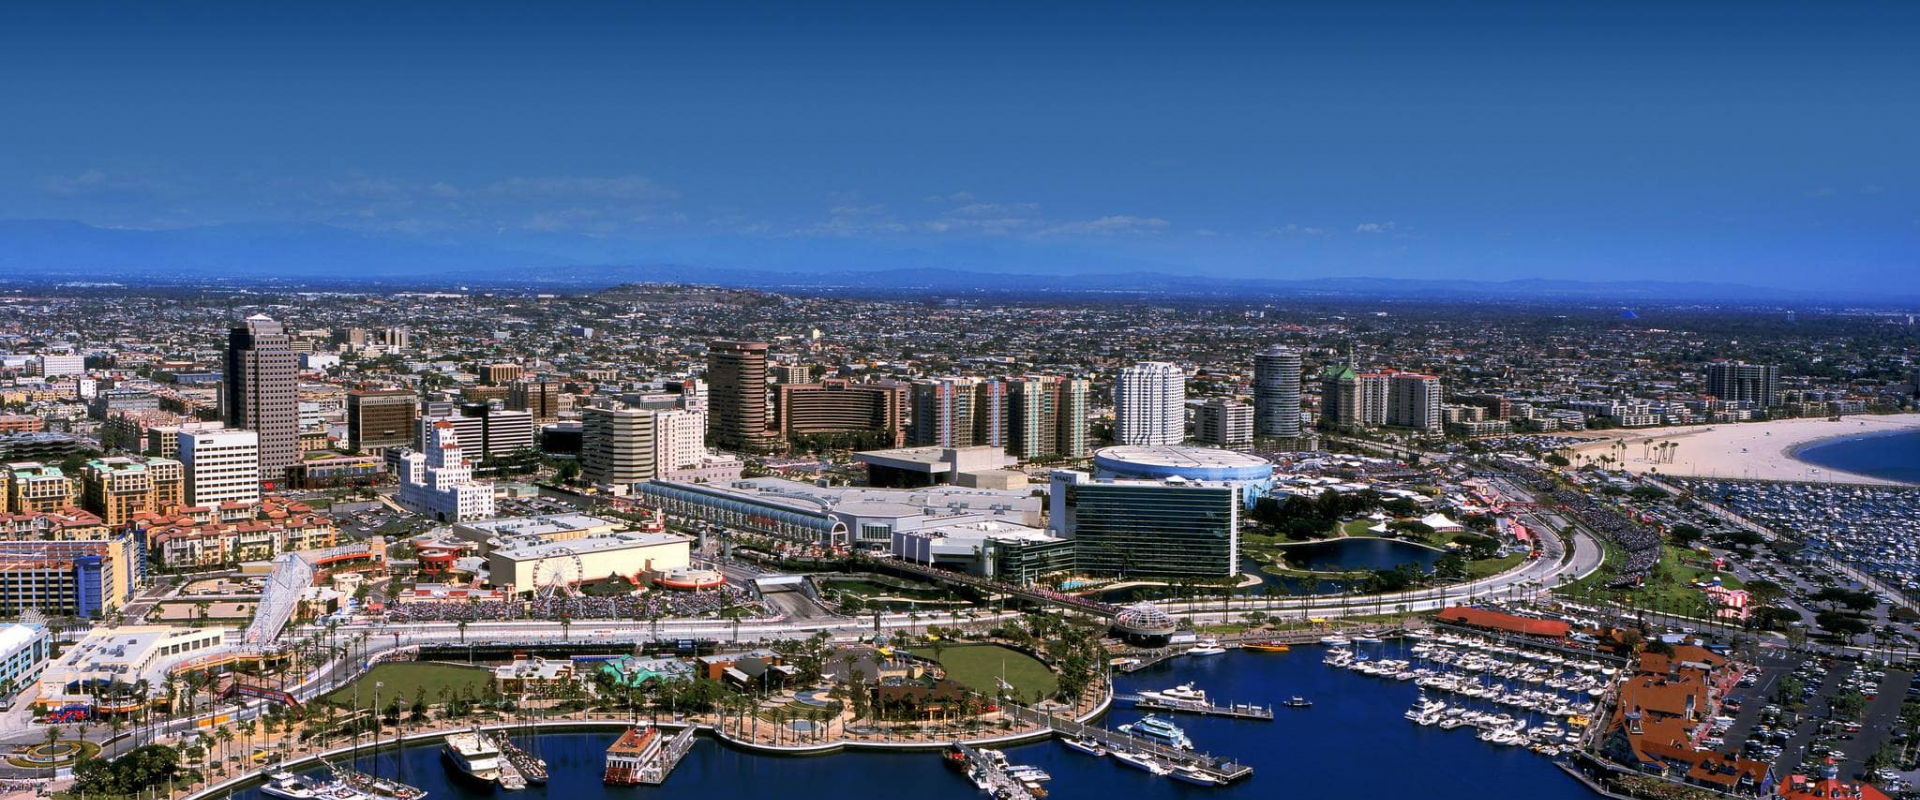 Photo: Aerial view of Long Beach